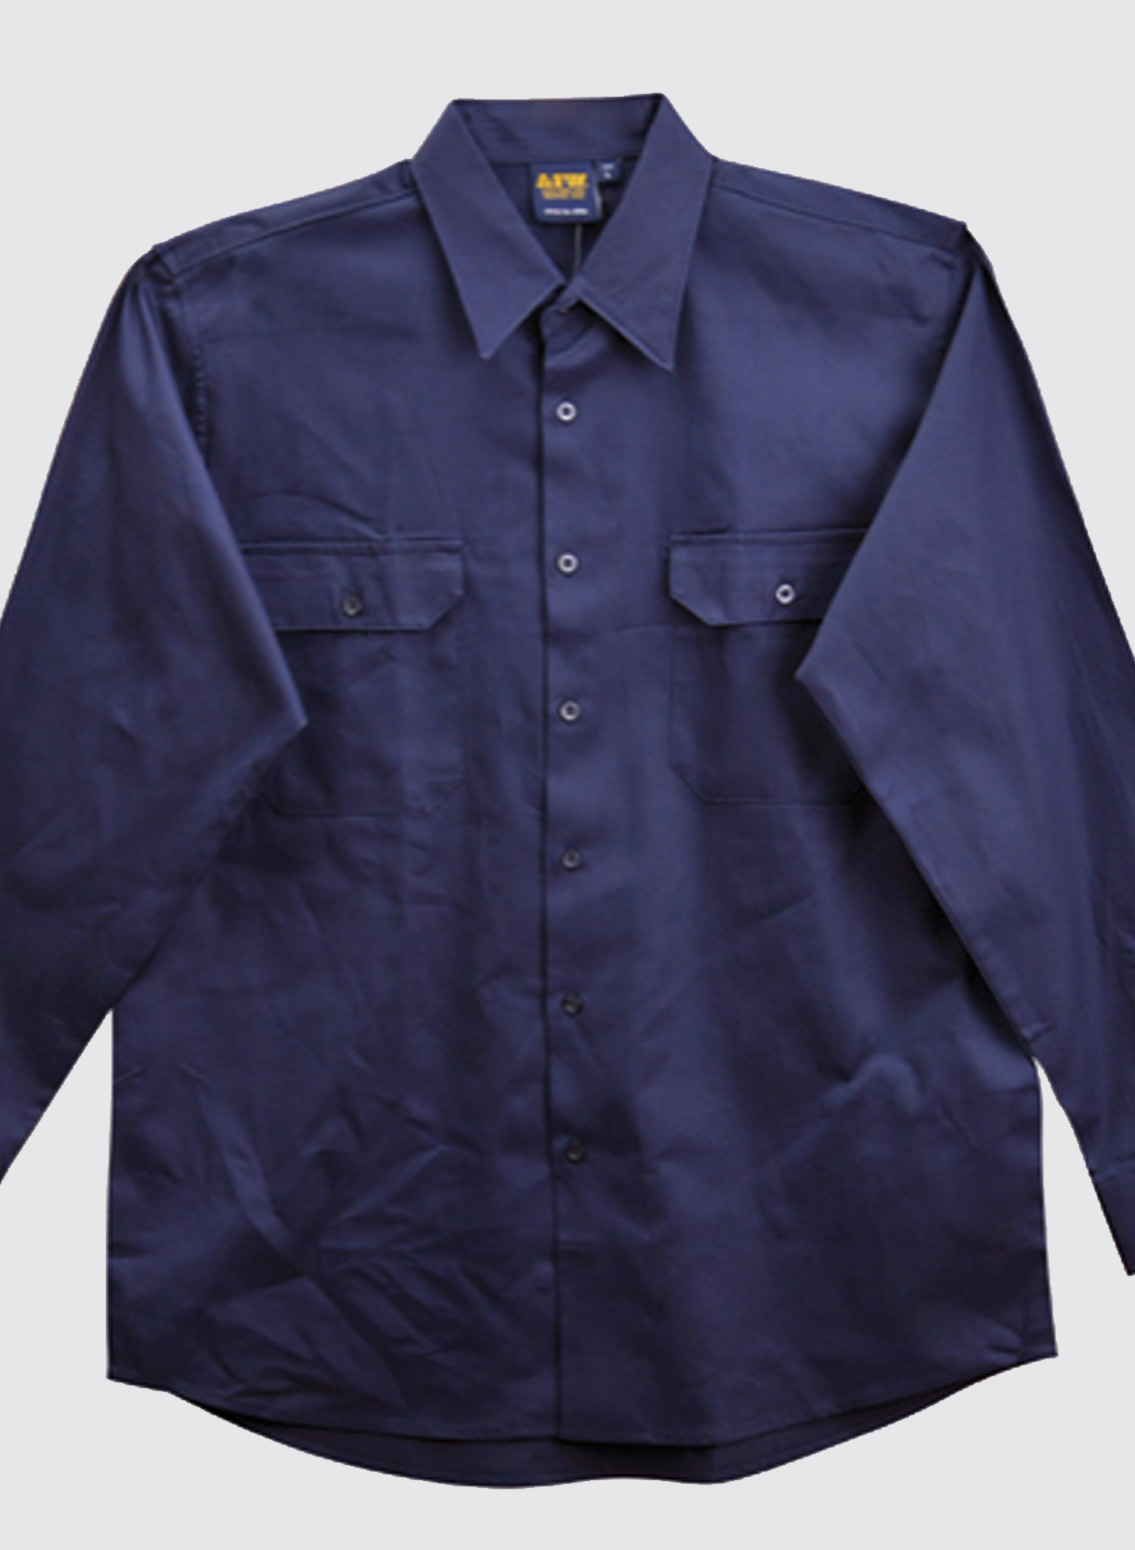 Wt04 Cotton Drill Long Sleeve Work Shirt Business Image